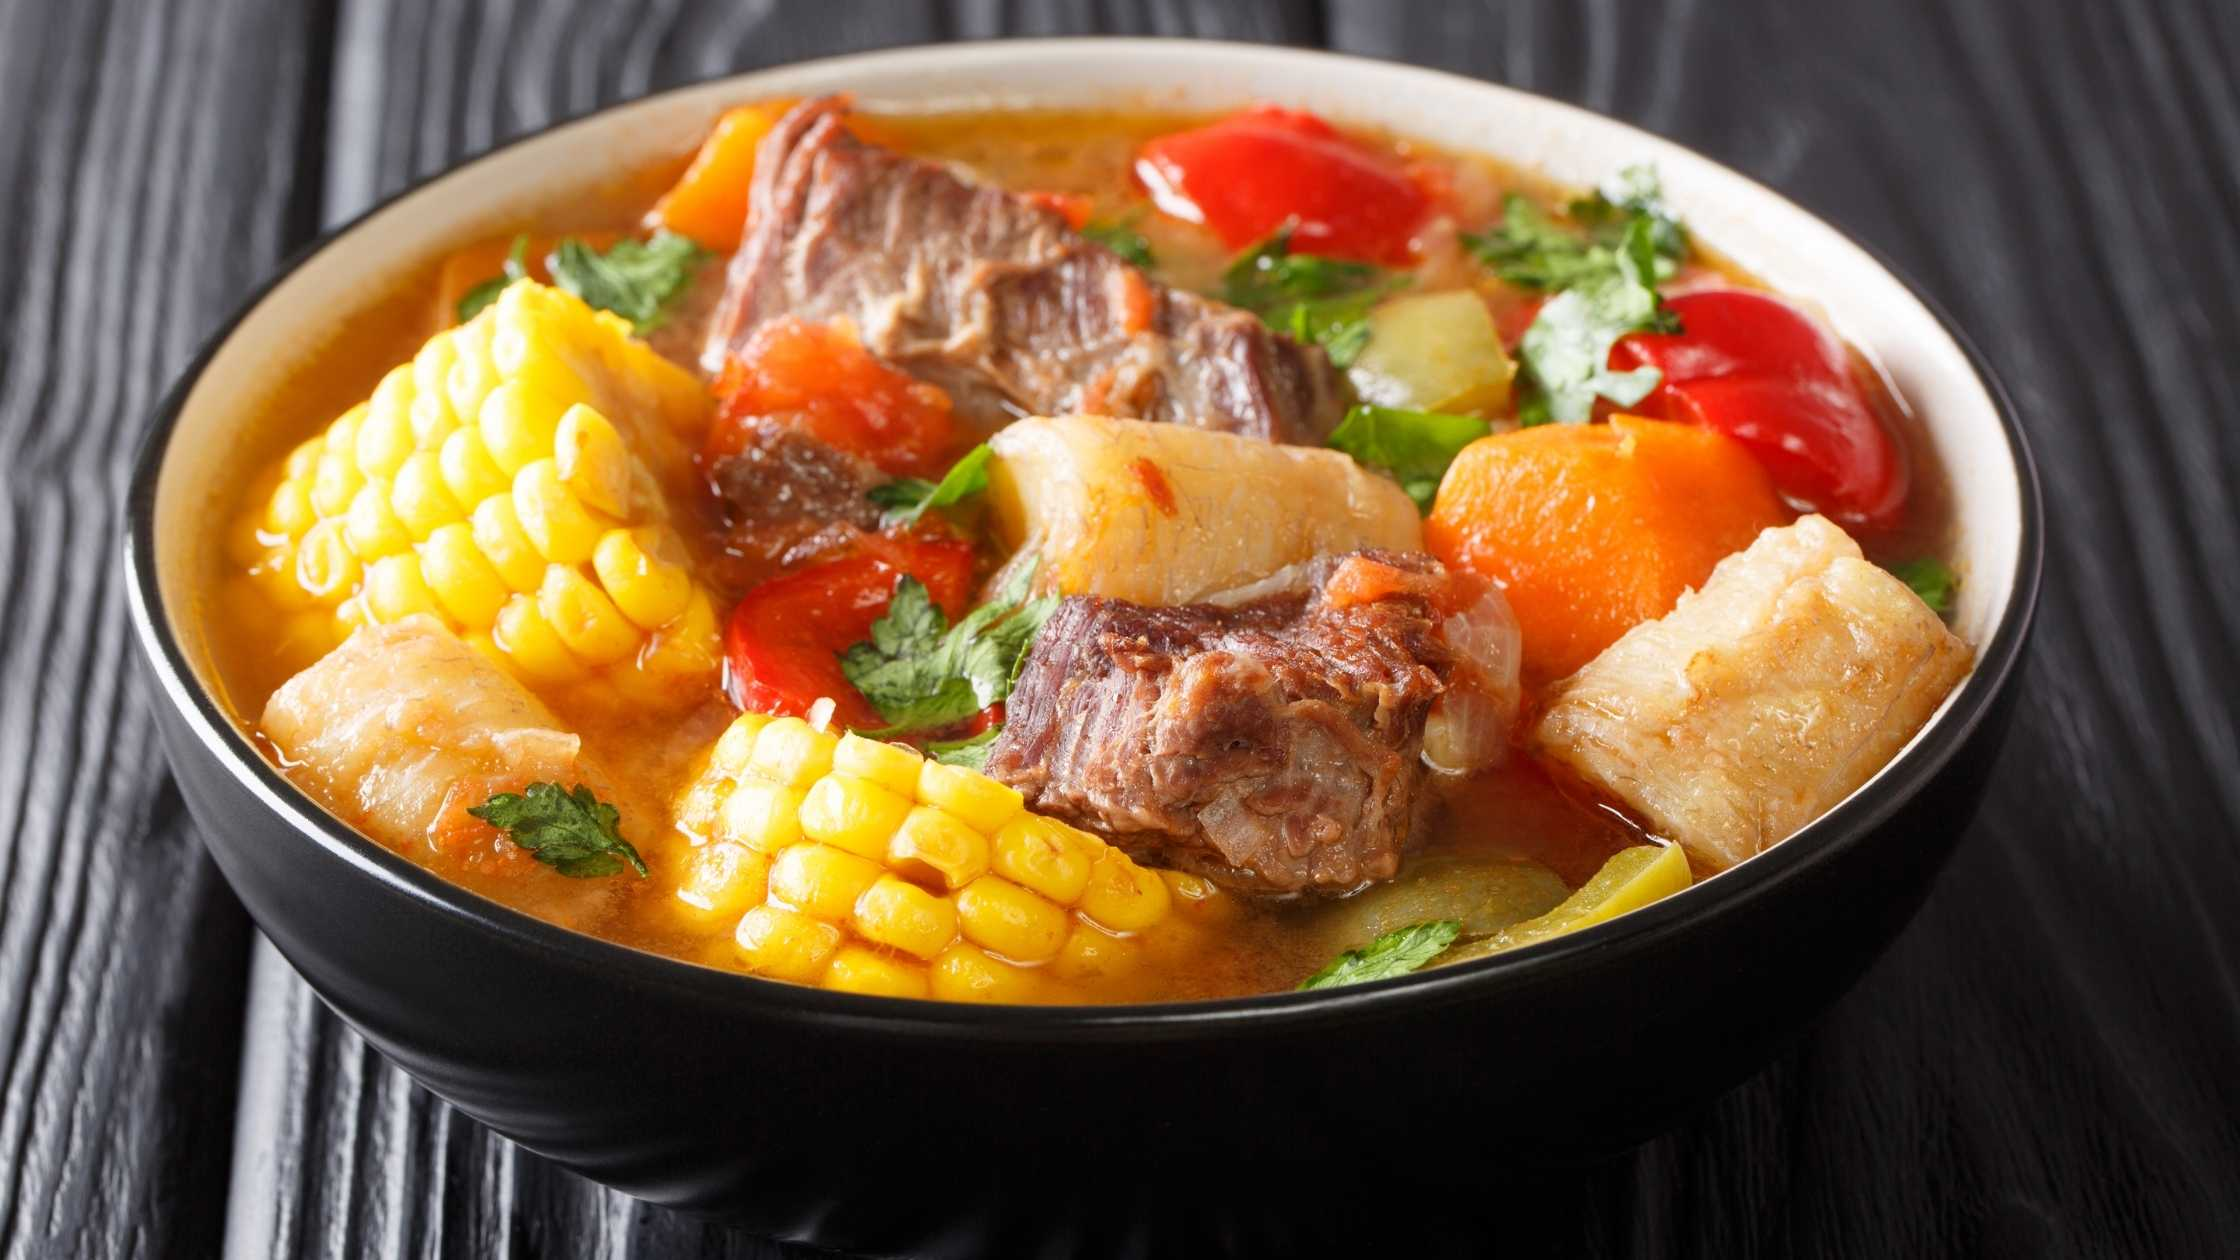 Sancocho soup dish in a black bowl